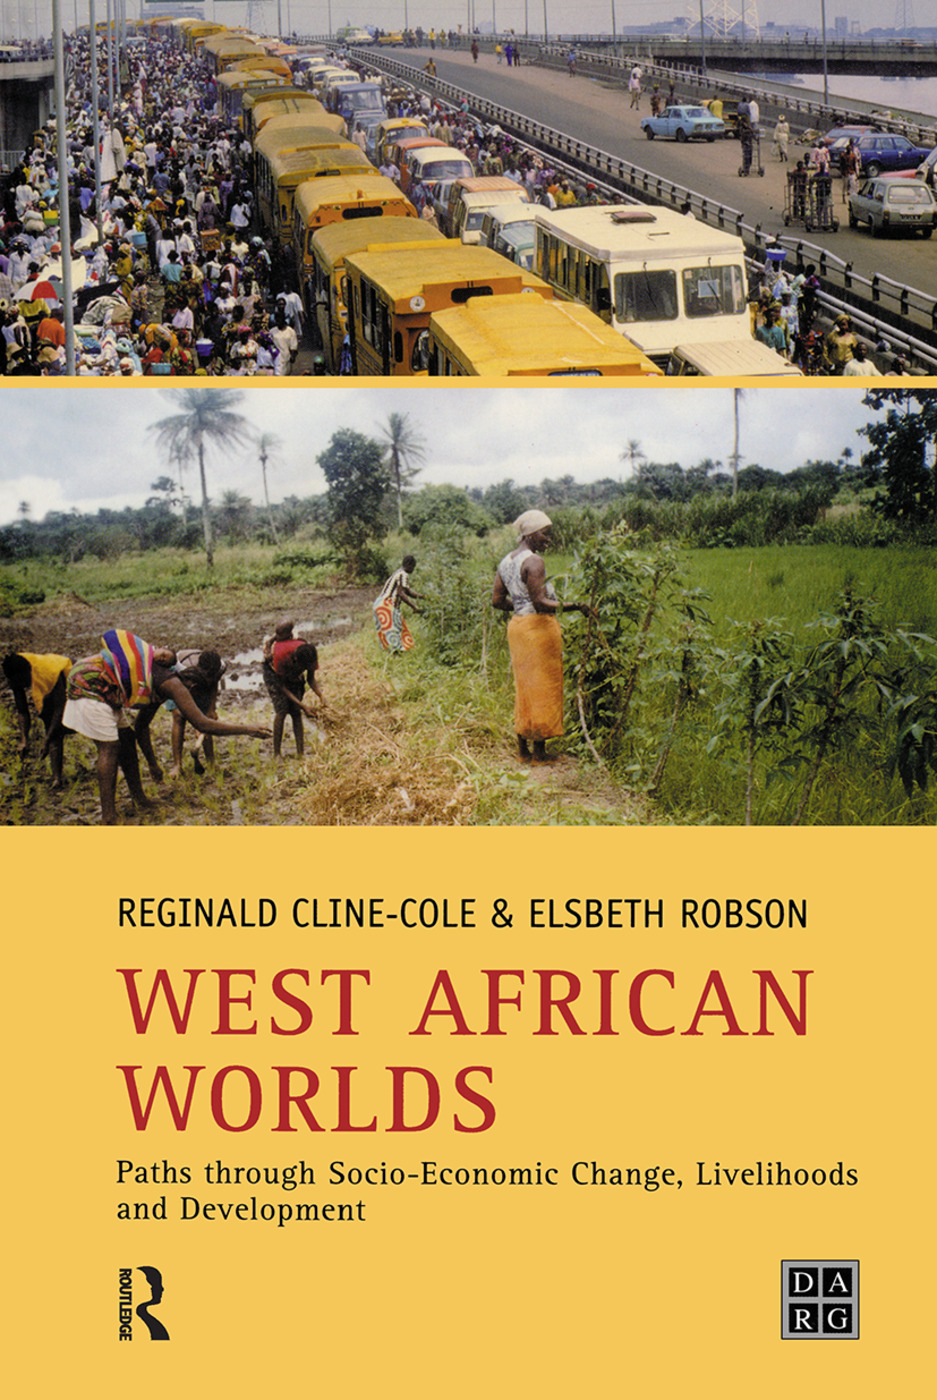 Paths through socio-economic change, livelihoods and development in West African worlds